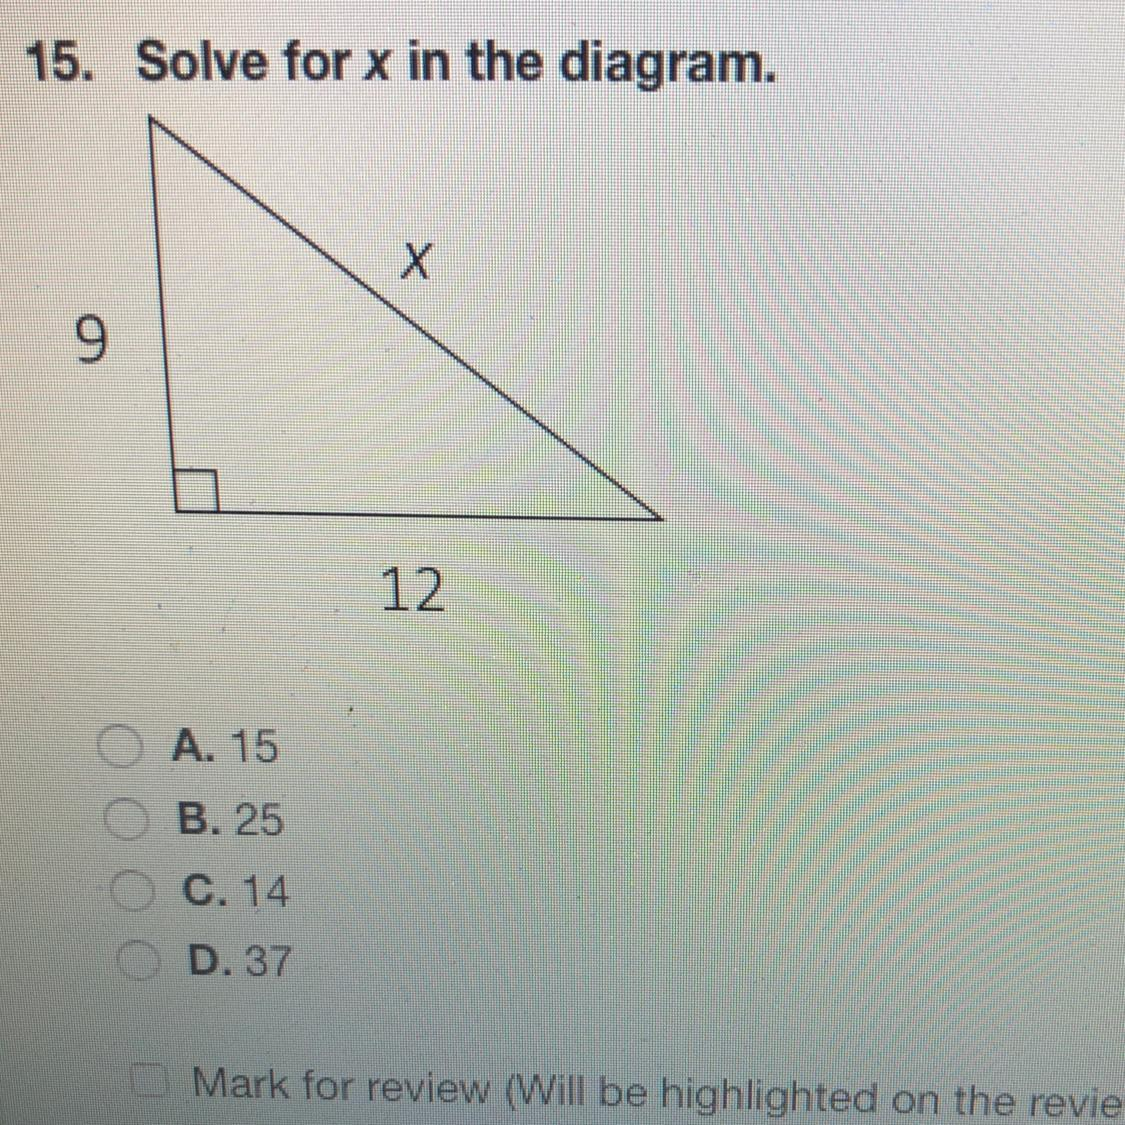 Solve for X in the diagram below